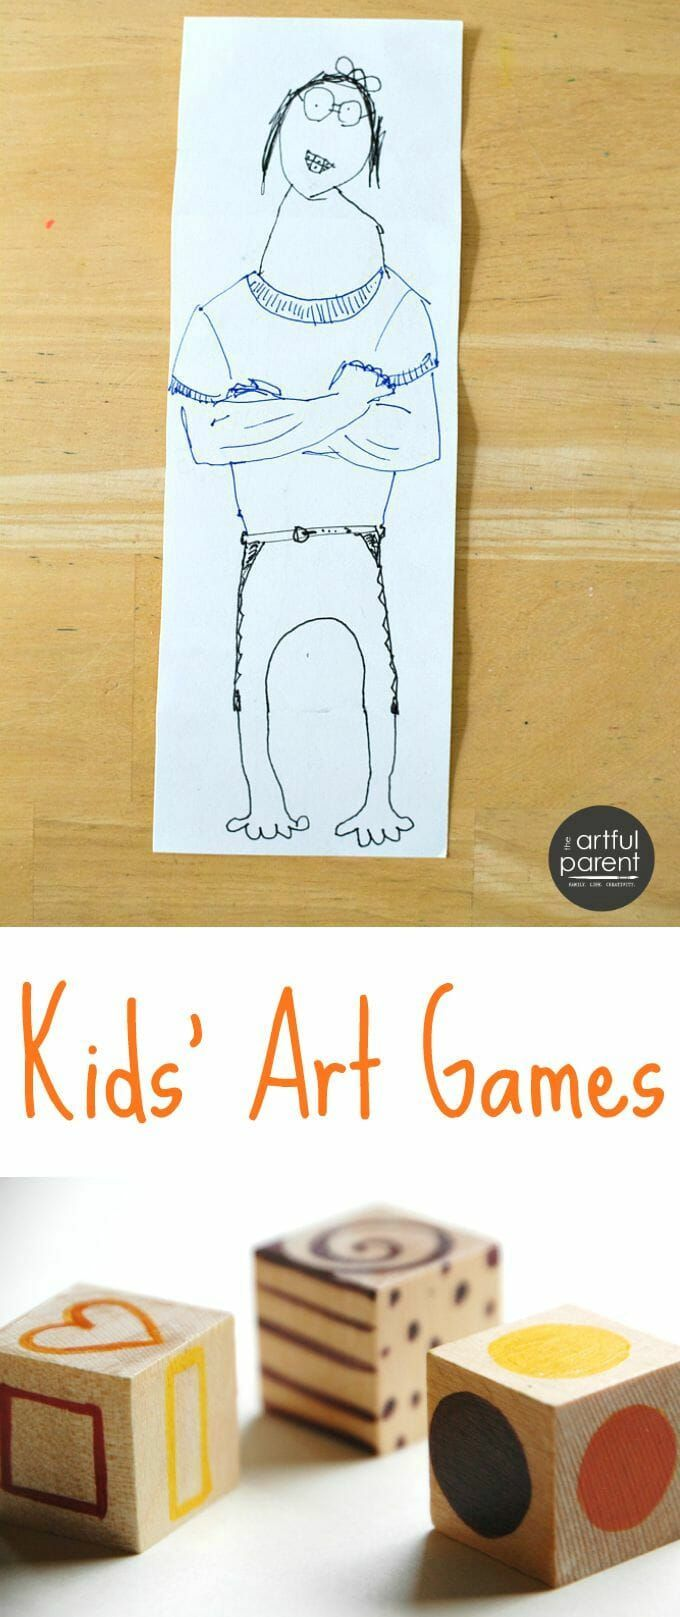 Kids art games are fun, encourage creativity, and are easy to fit in whenever and wherever. Here are 12+ art games for kids to try one on one or in a group.